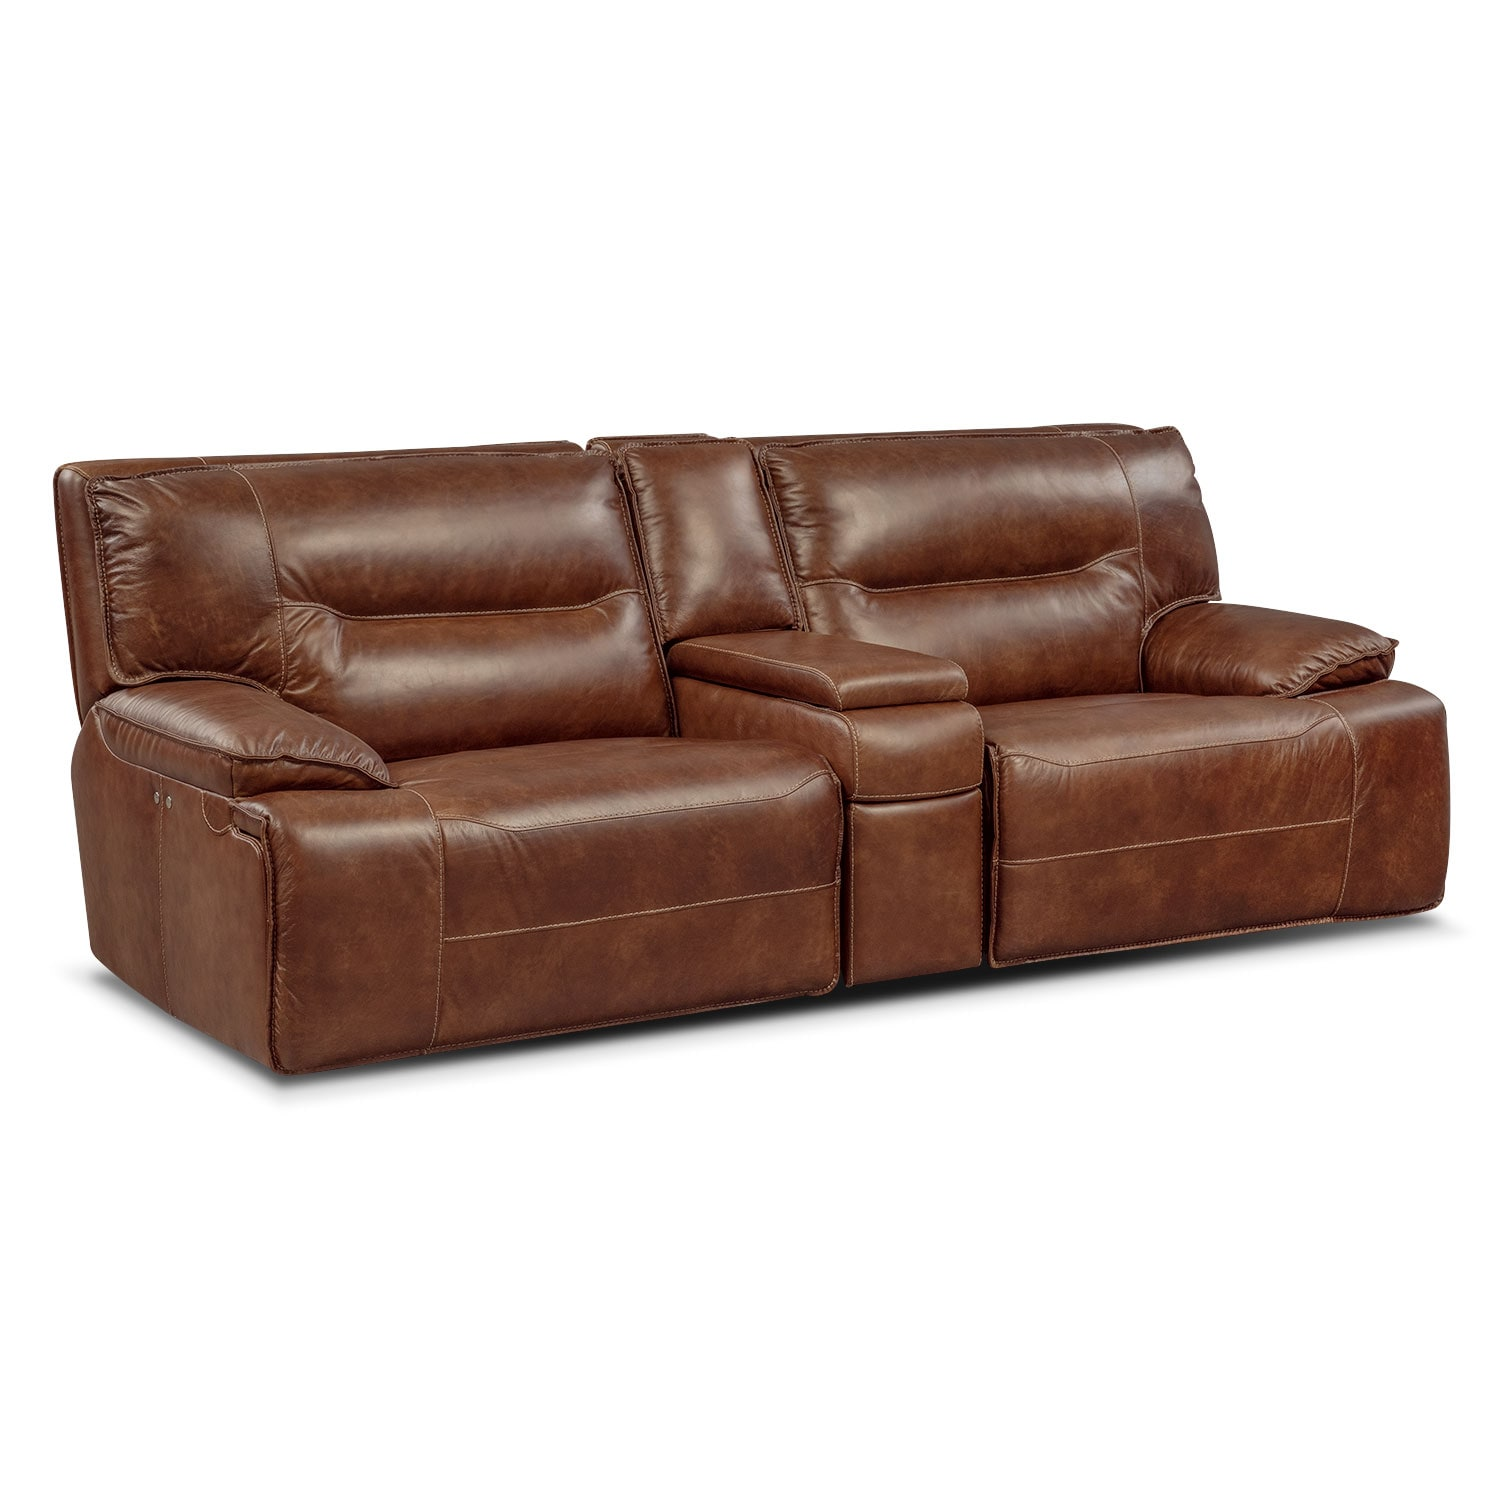 Living Room Furniture - Glenmont Power Reclining Sofa with Console - Brown